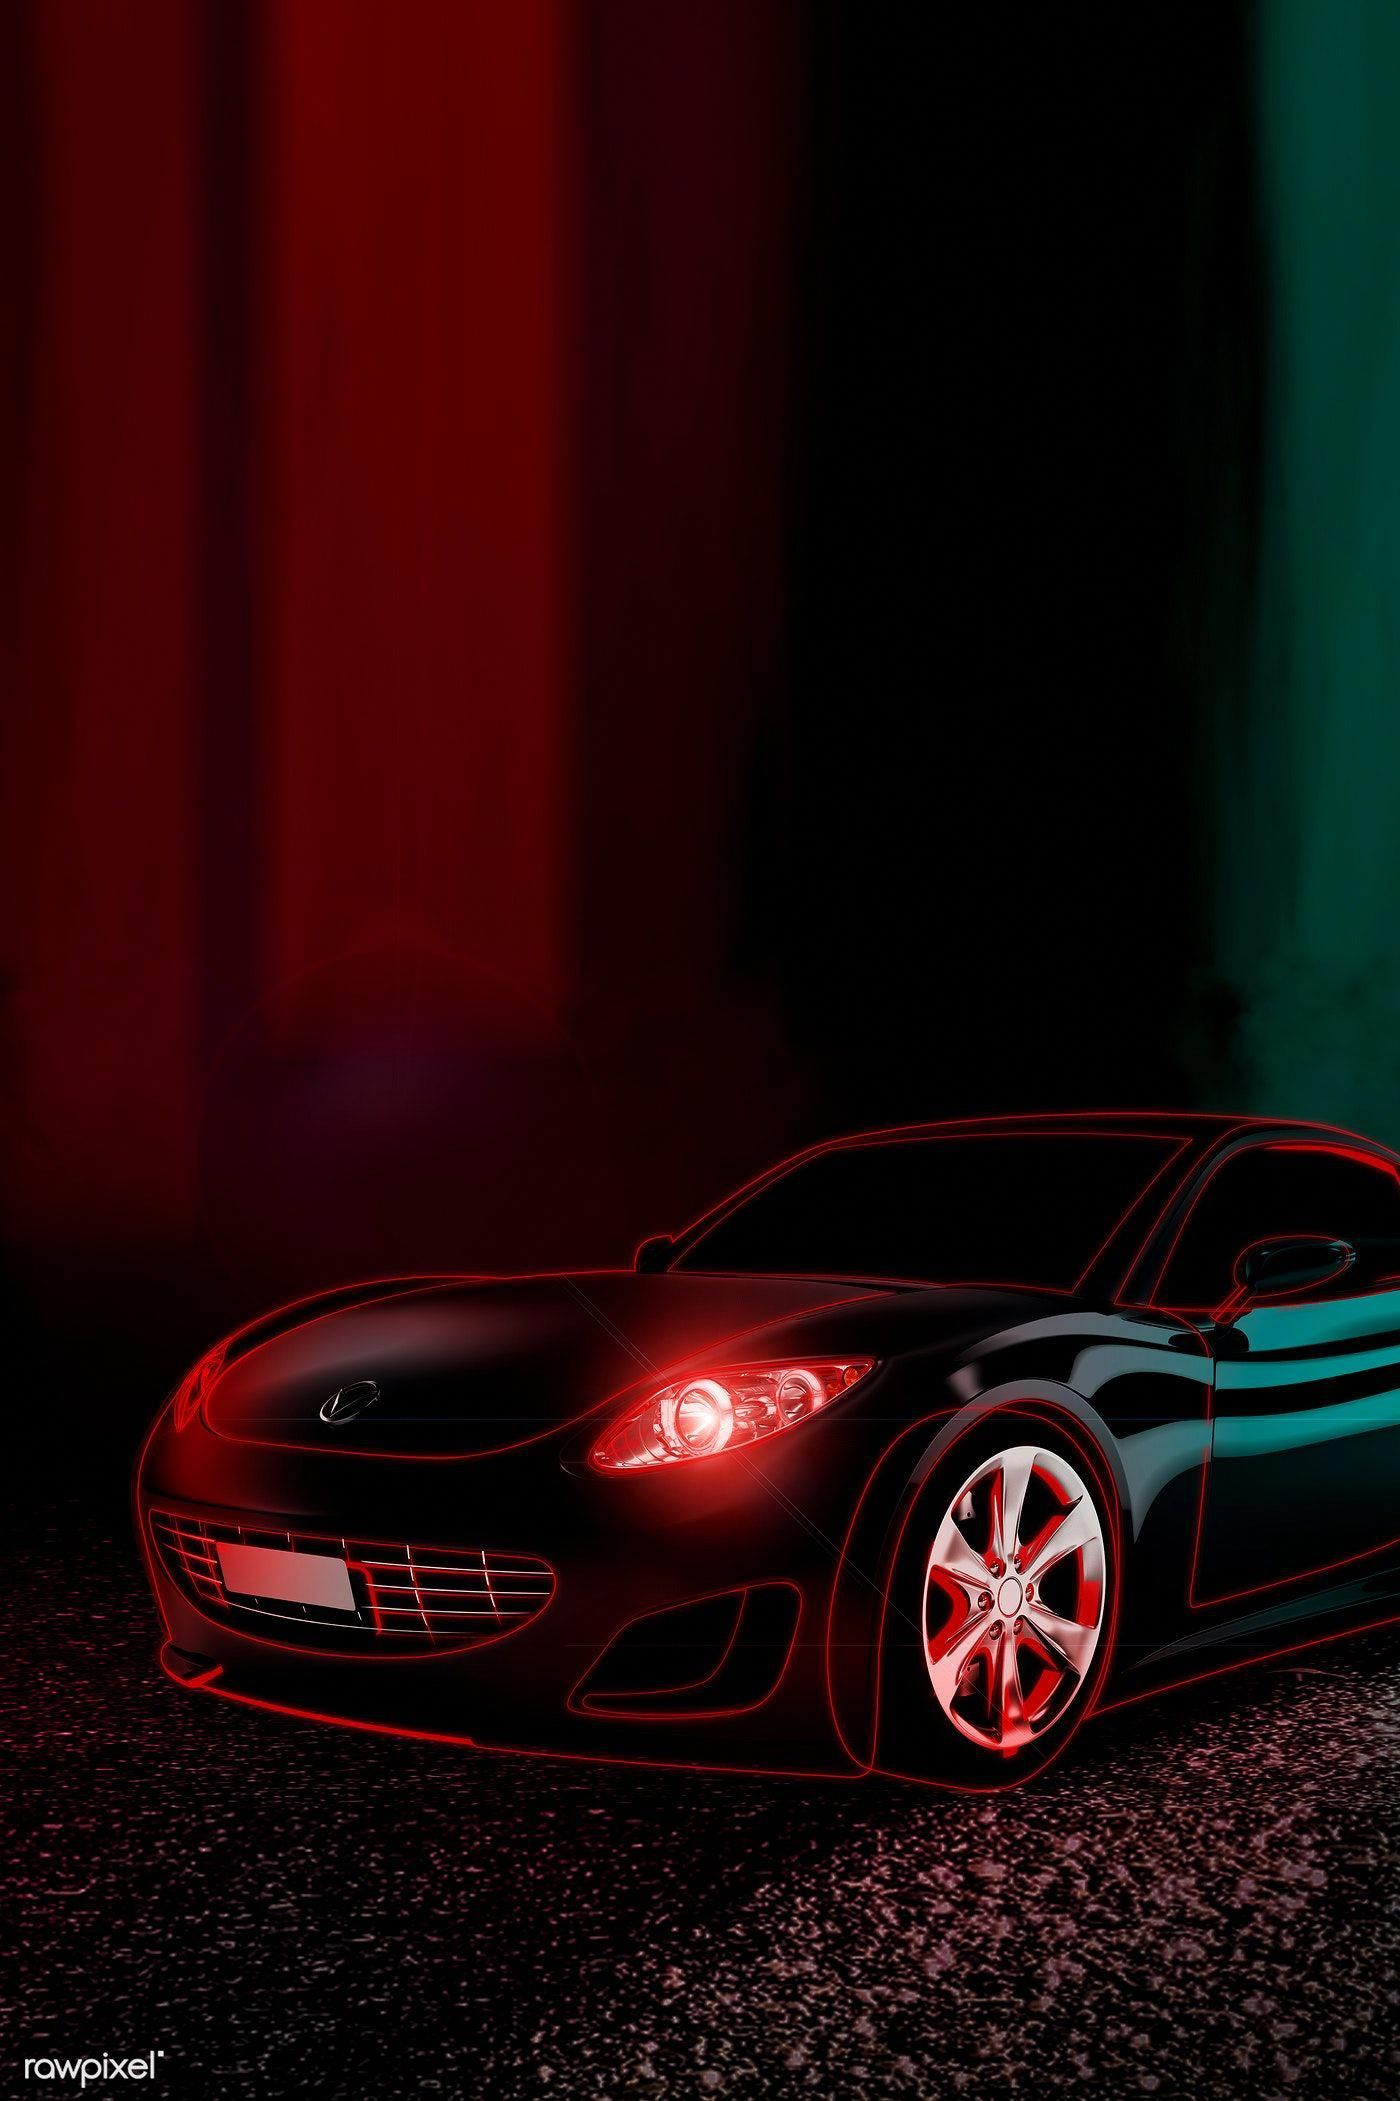 Red Neon Sports Car Design Premium Image By Rawpixel Com Nap Mercedesbenzclassiccars Sports Car Neon Car Car Design